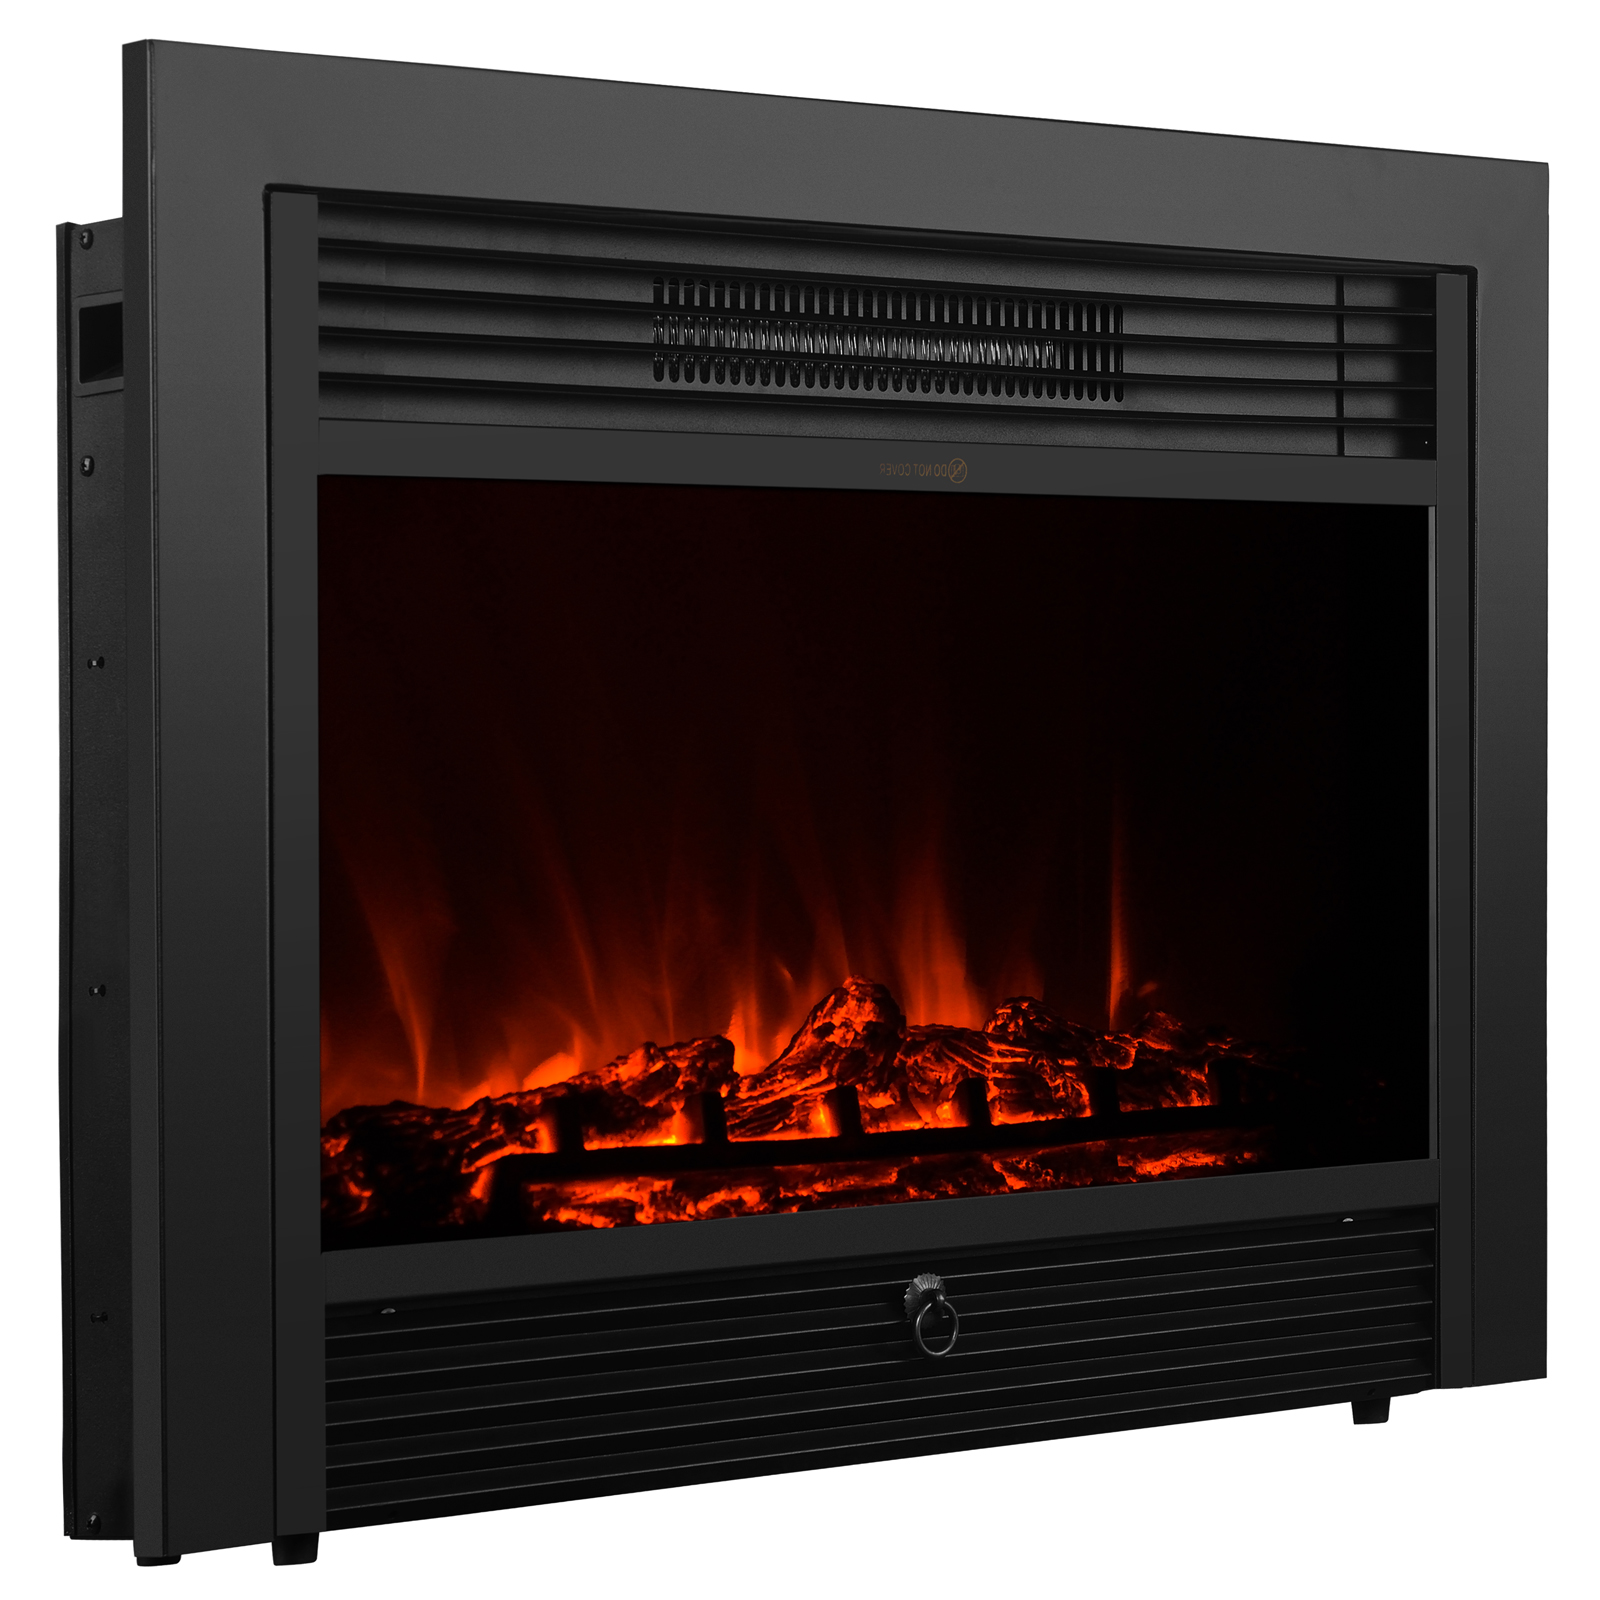 28 5 embedded electric fireplace insert heater glass view log flame w remote ebay. Black Bedroom Furniture Sets. Home Design Ideas